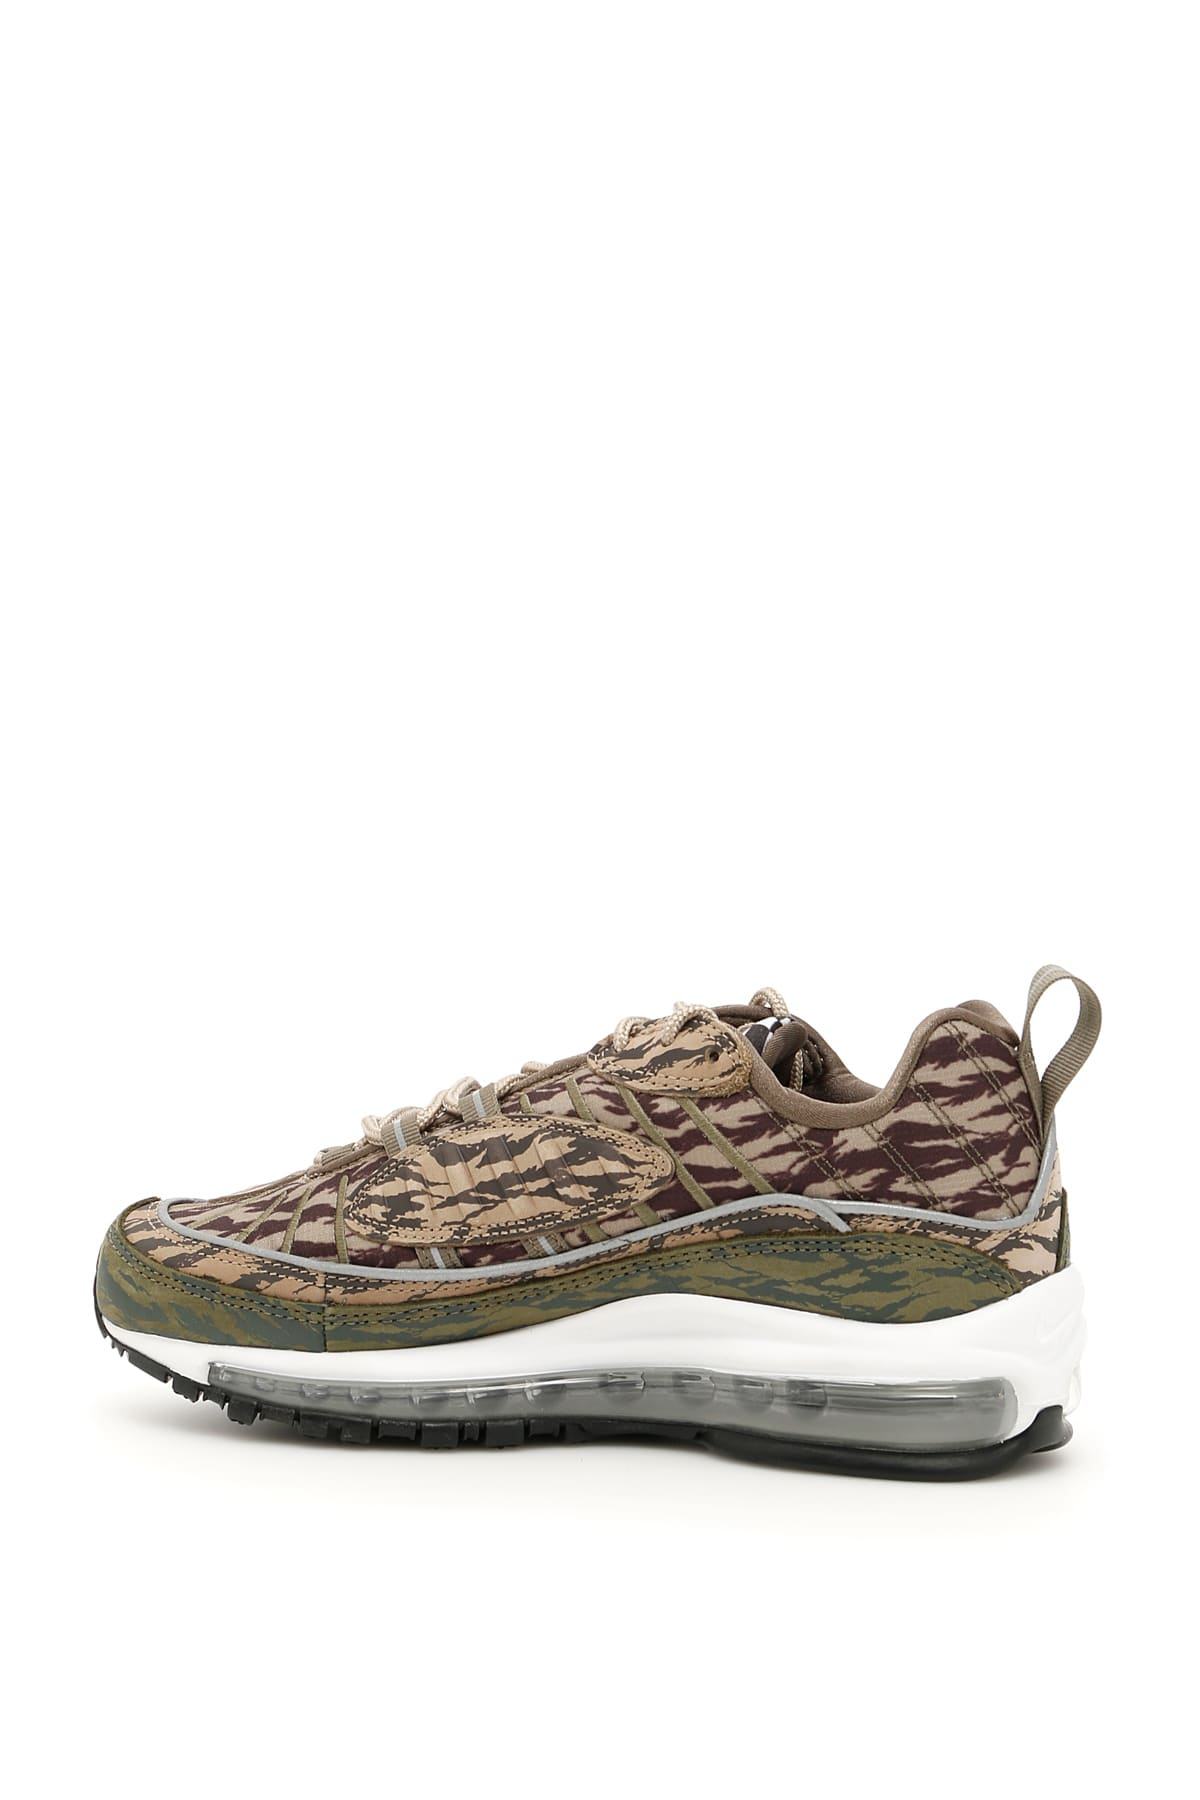 best service 84135 16b9e Nike Air Max 98 Sneakers